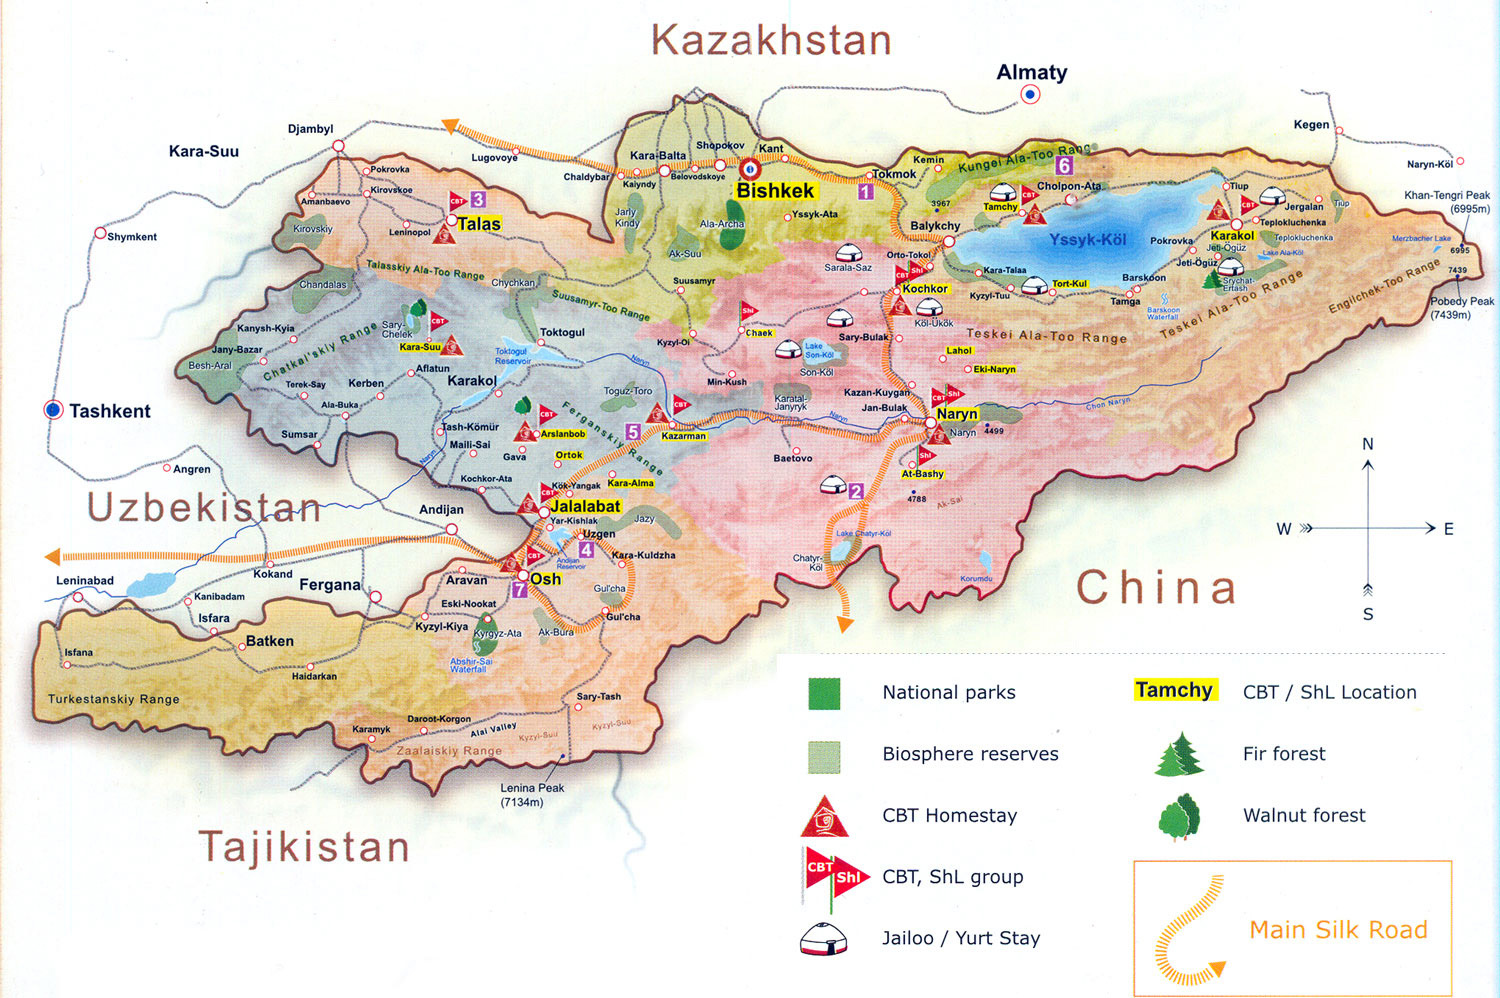 Maps of kyrgyzstan detailed map of kyrgyzstan in english detailed tourist map of kyrgyzstan gumiabroncs Choice Image